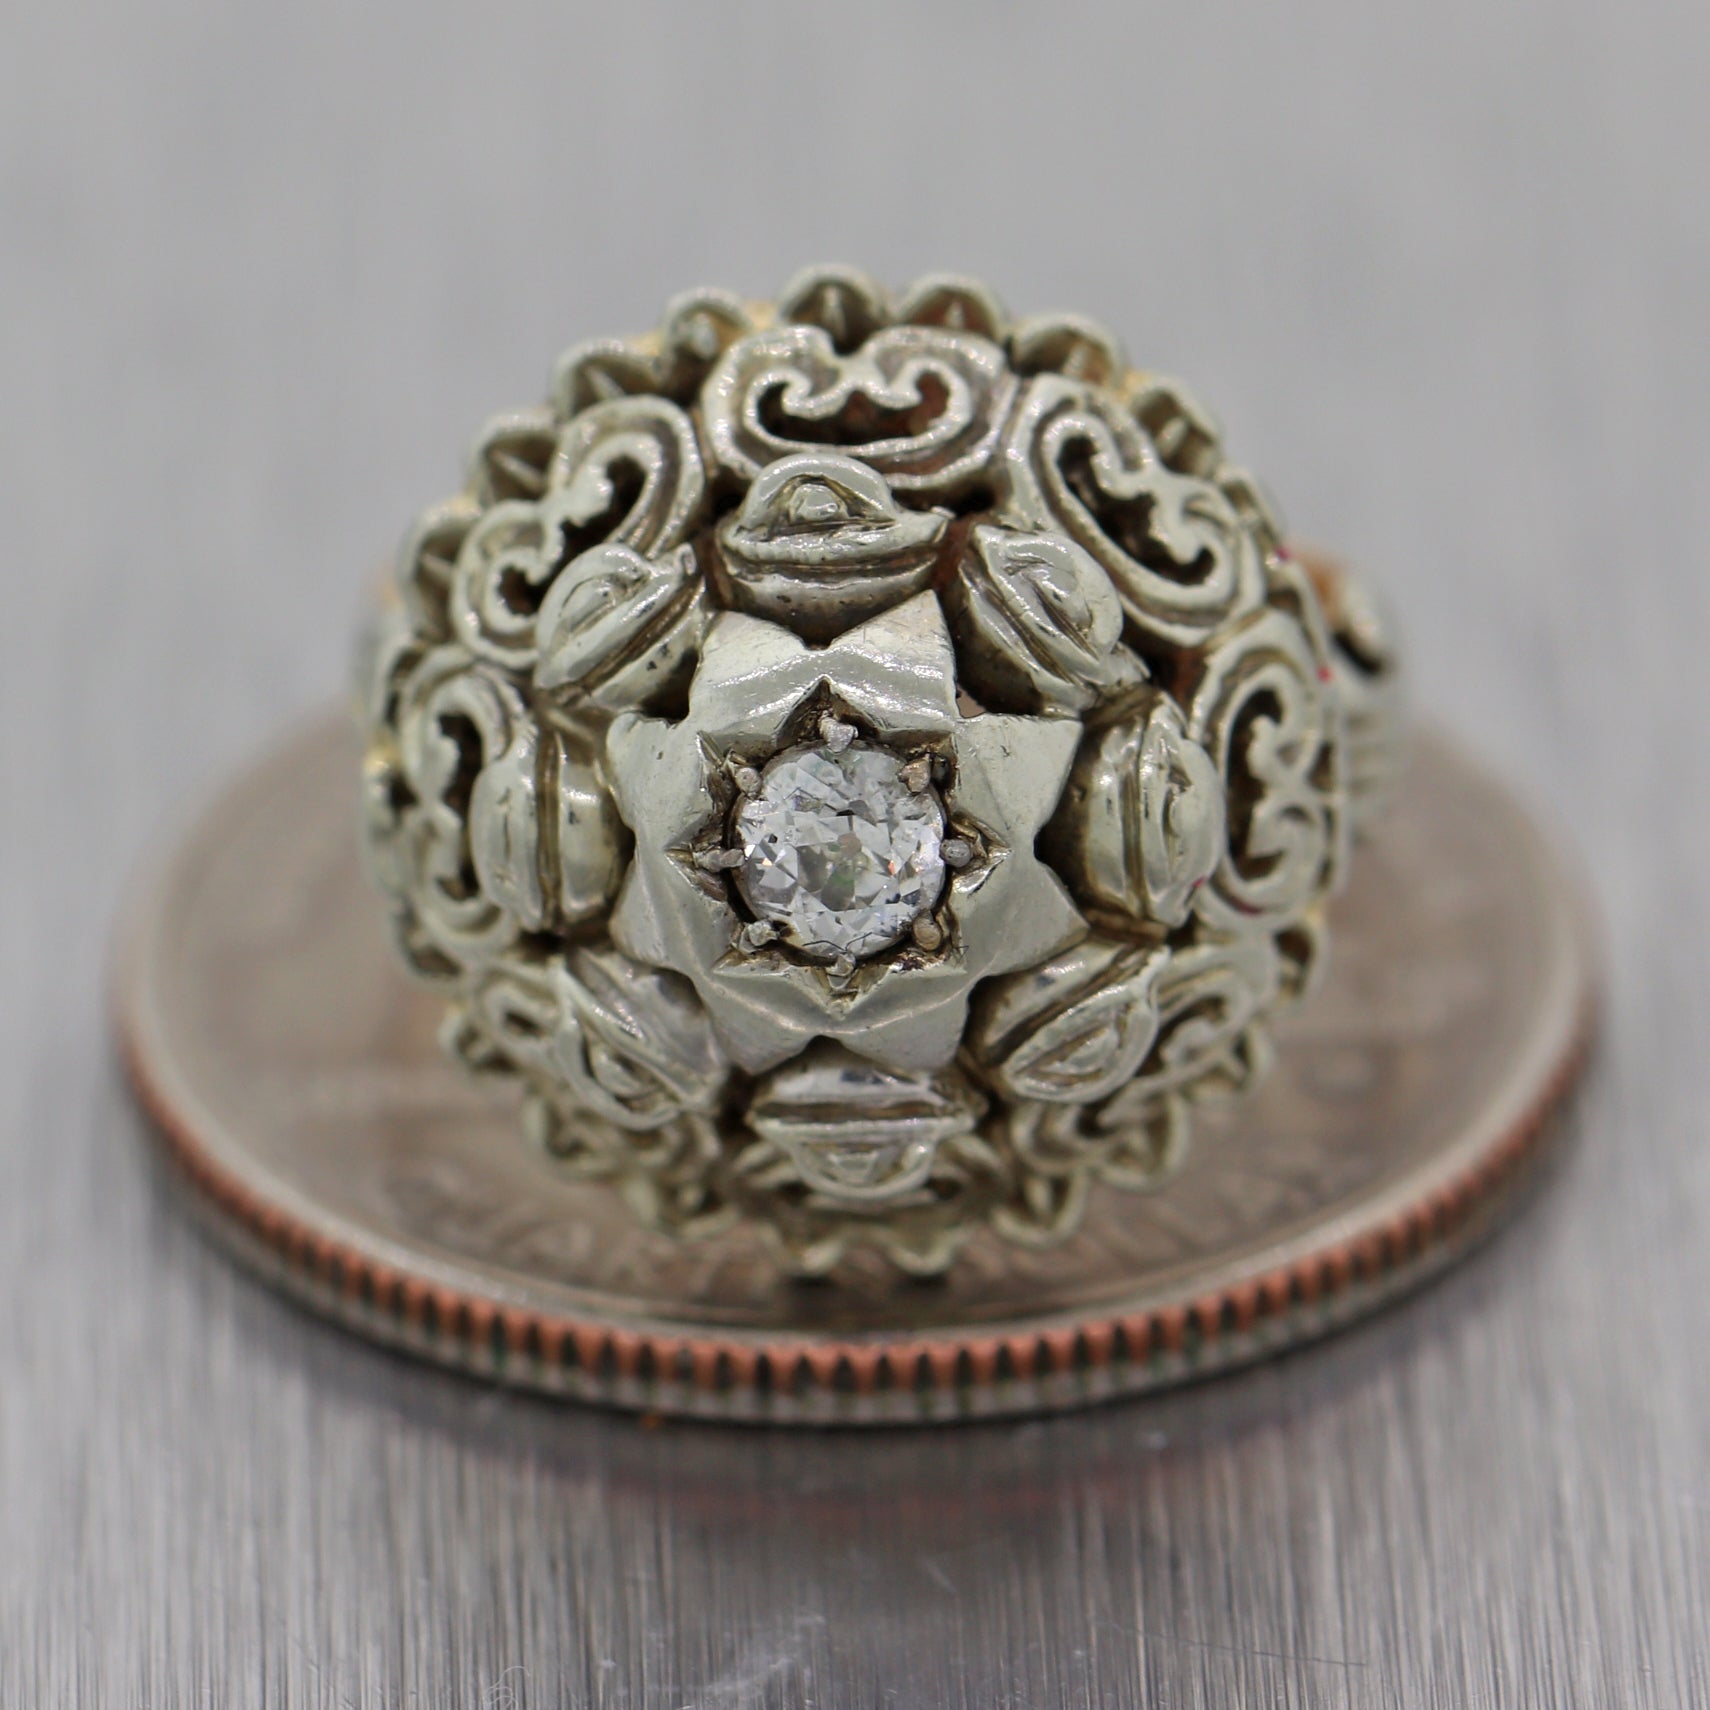 1890's Antique Victorian 18k Yellow & White Gold 0.15ctw Diamond Dome Ring